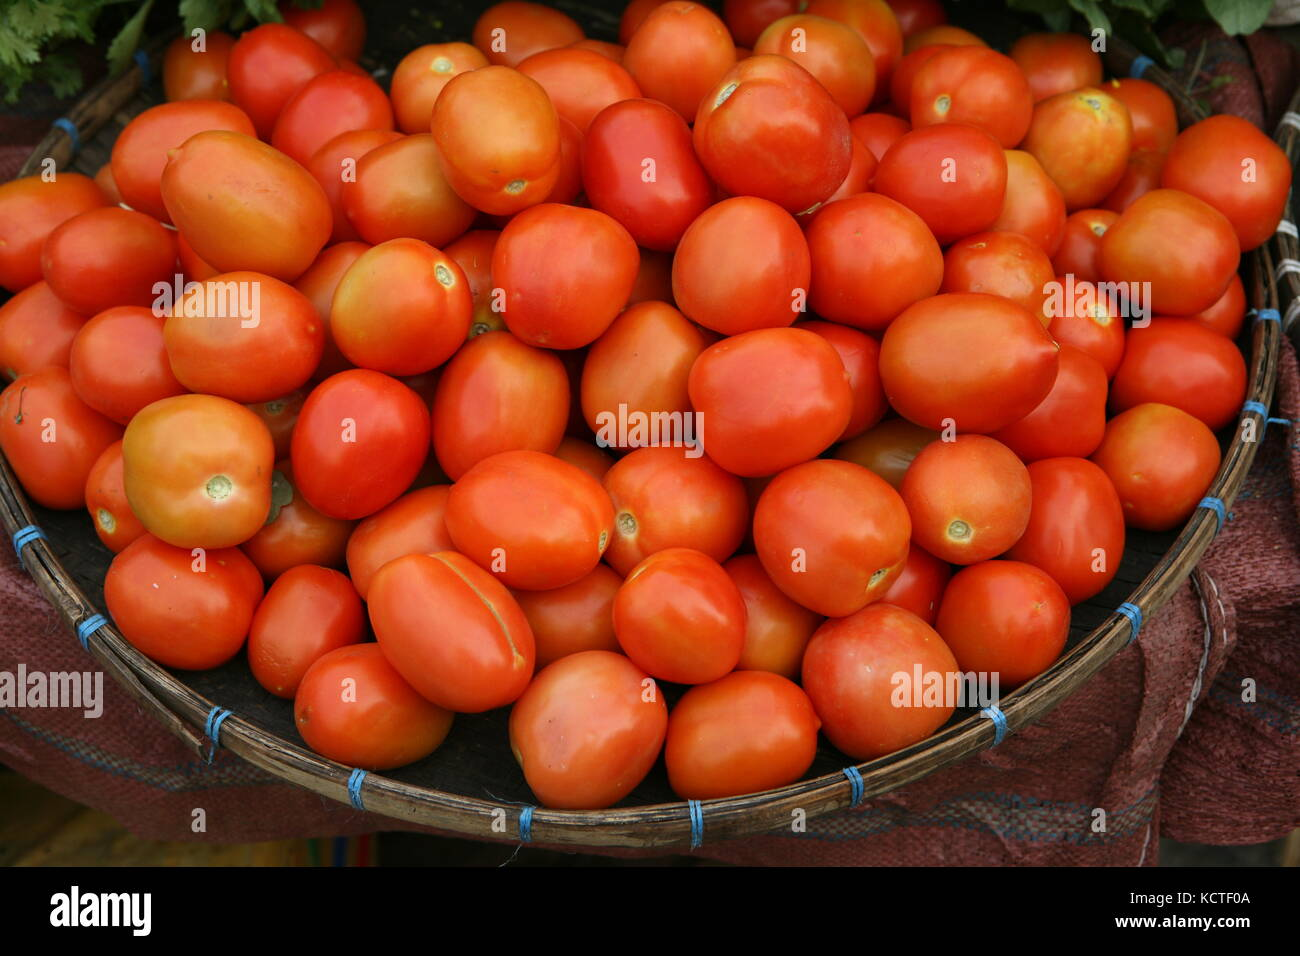 Tomaten in einem Korb - Tomatoes in a basket - Stock Image